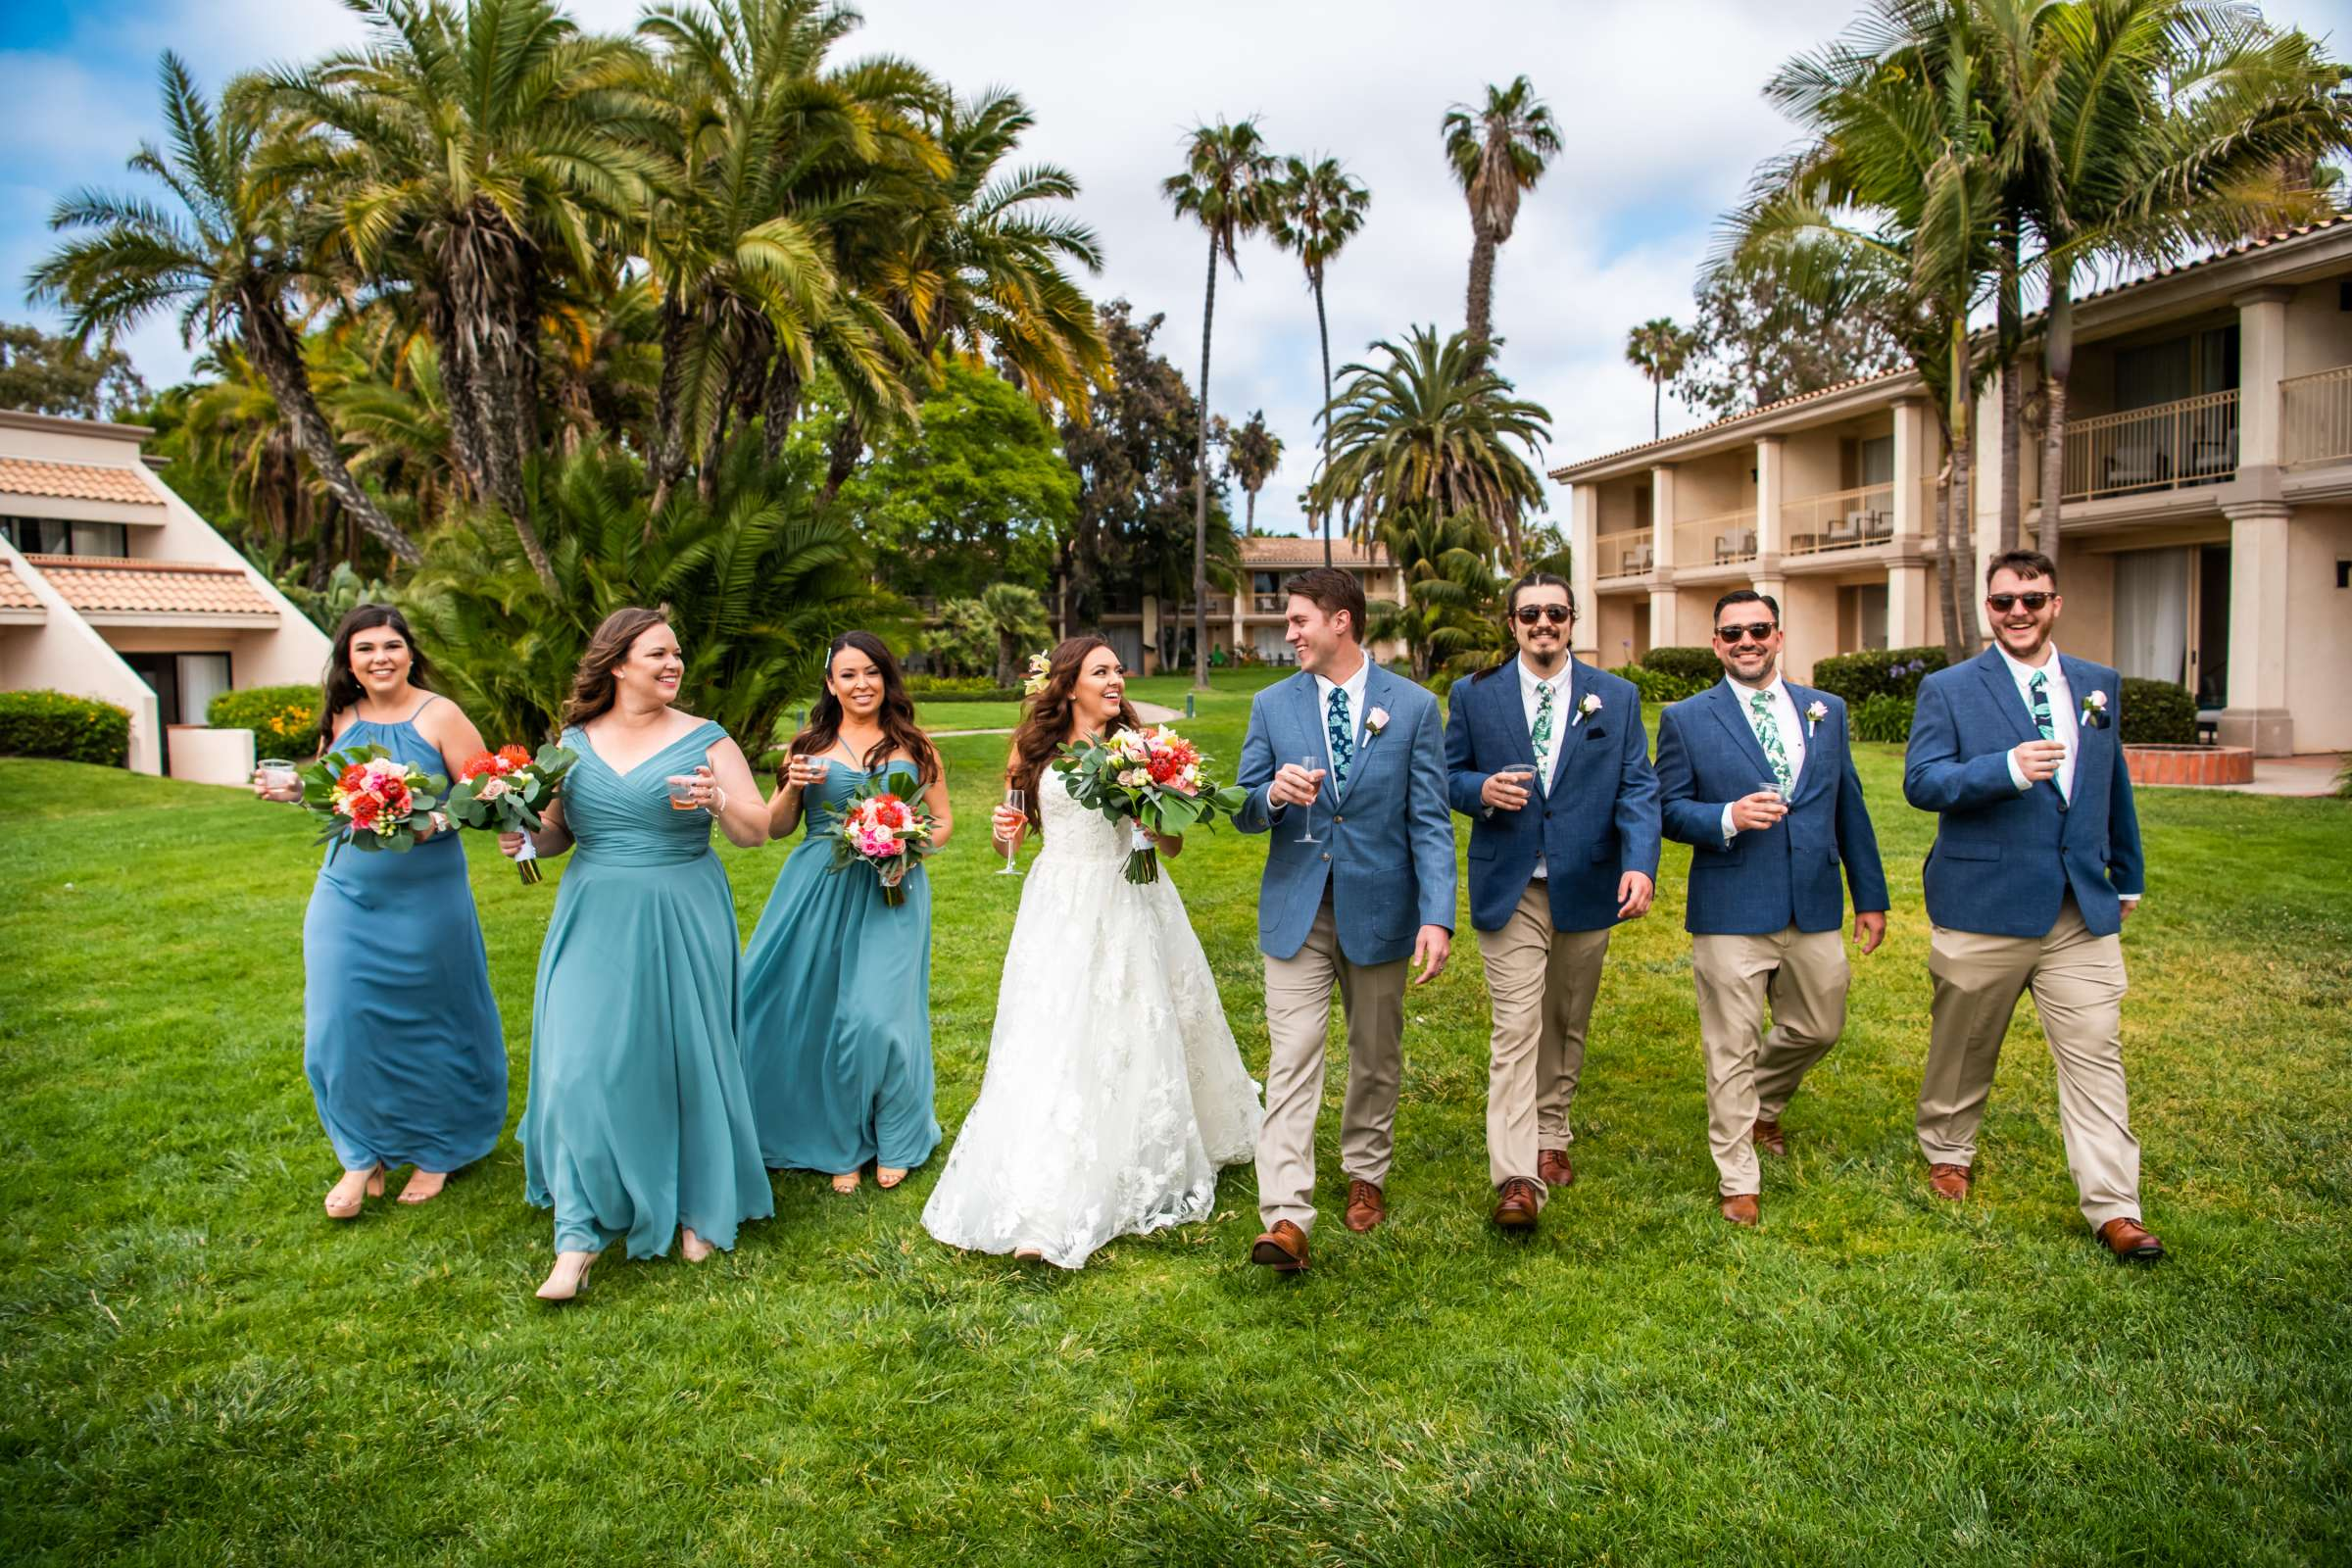 San Diego Mission Bay Resort Wedding coordinated by Cafe Au Love, Lauren and Adam Wedding Photo #15 by True Photography